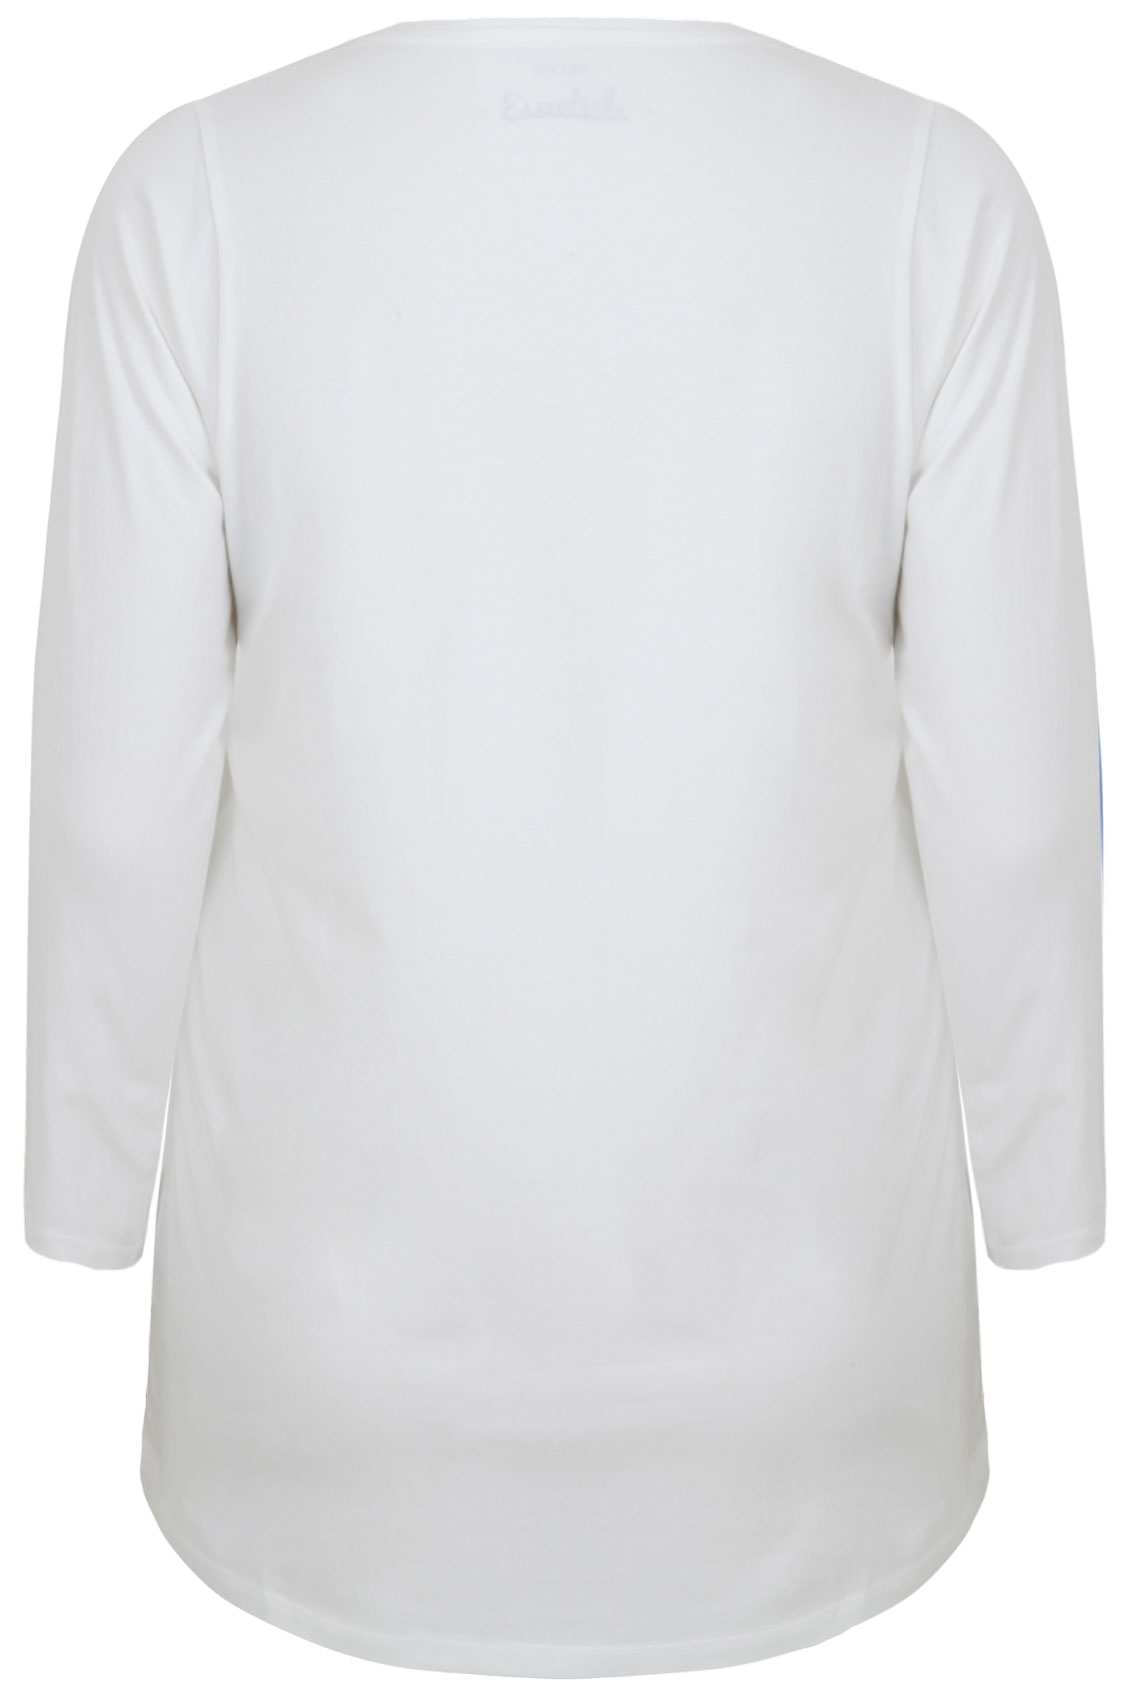 White Long Sleeve V-Neck Plain T-Shirt Plus Size 16 to 36